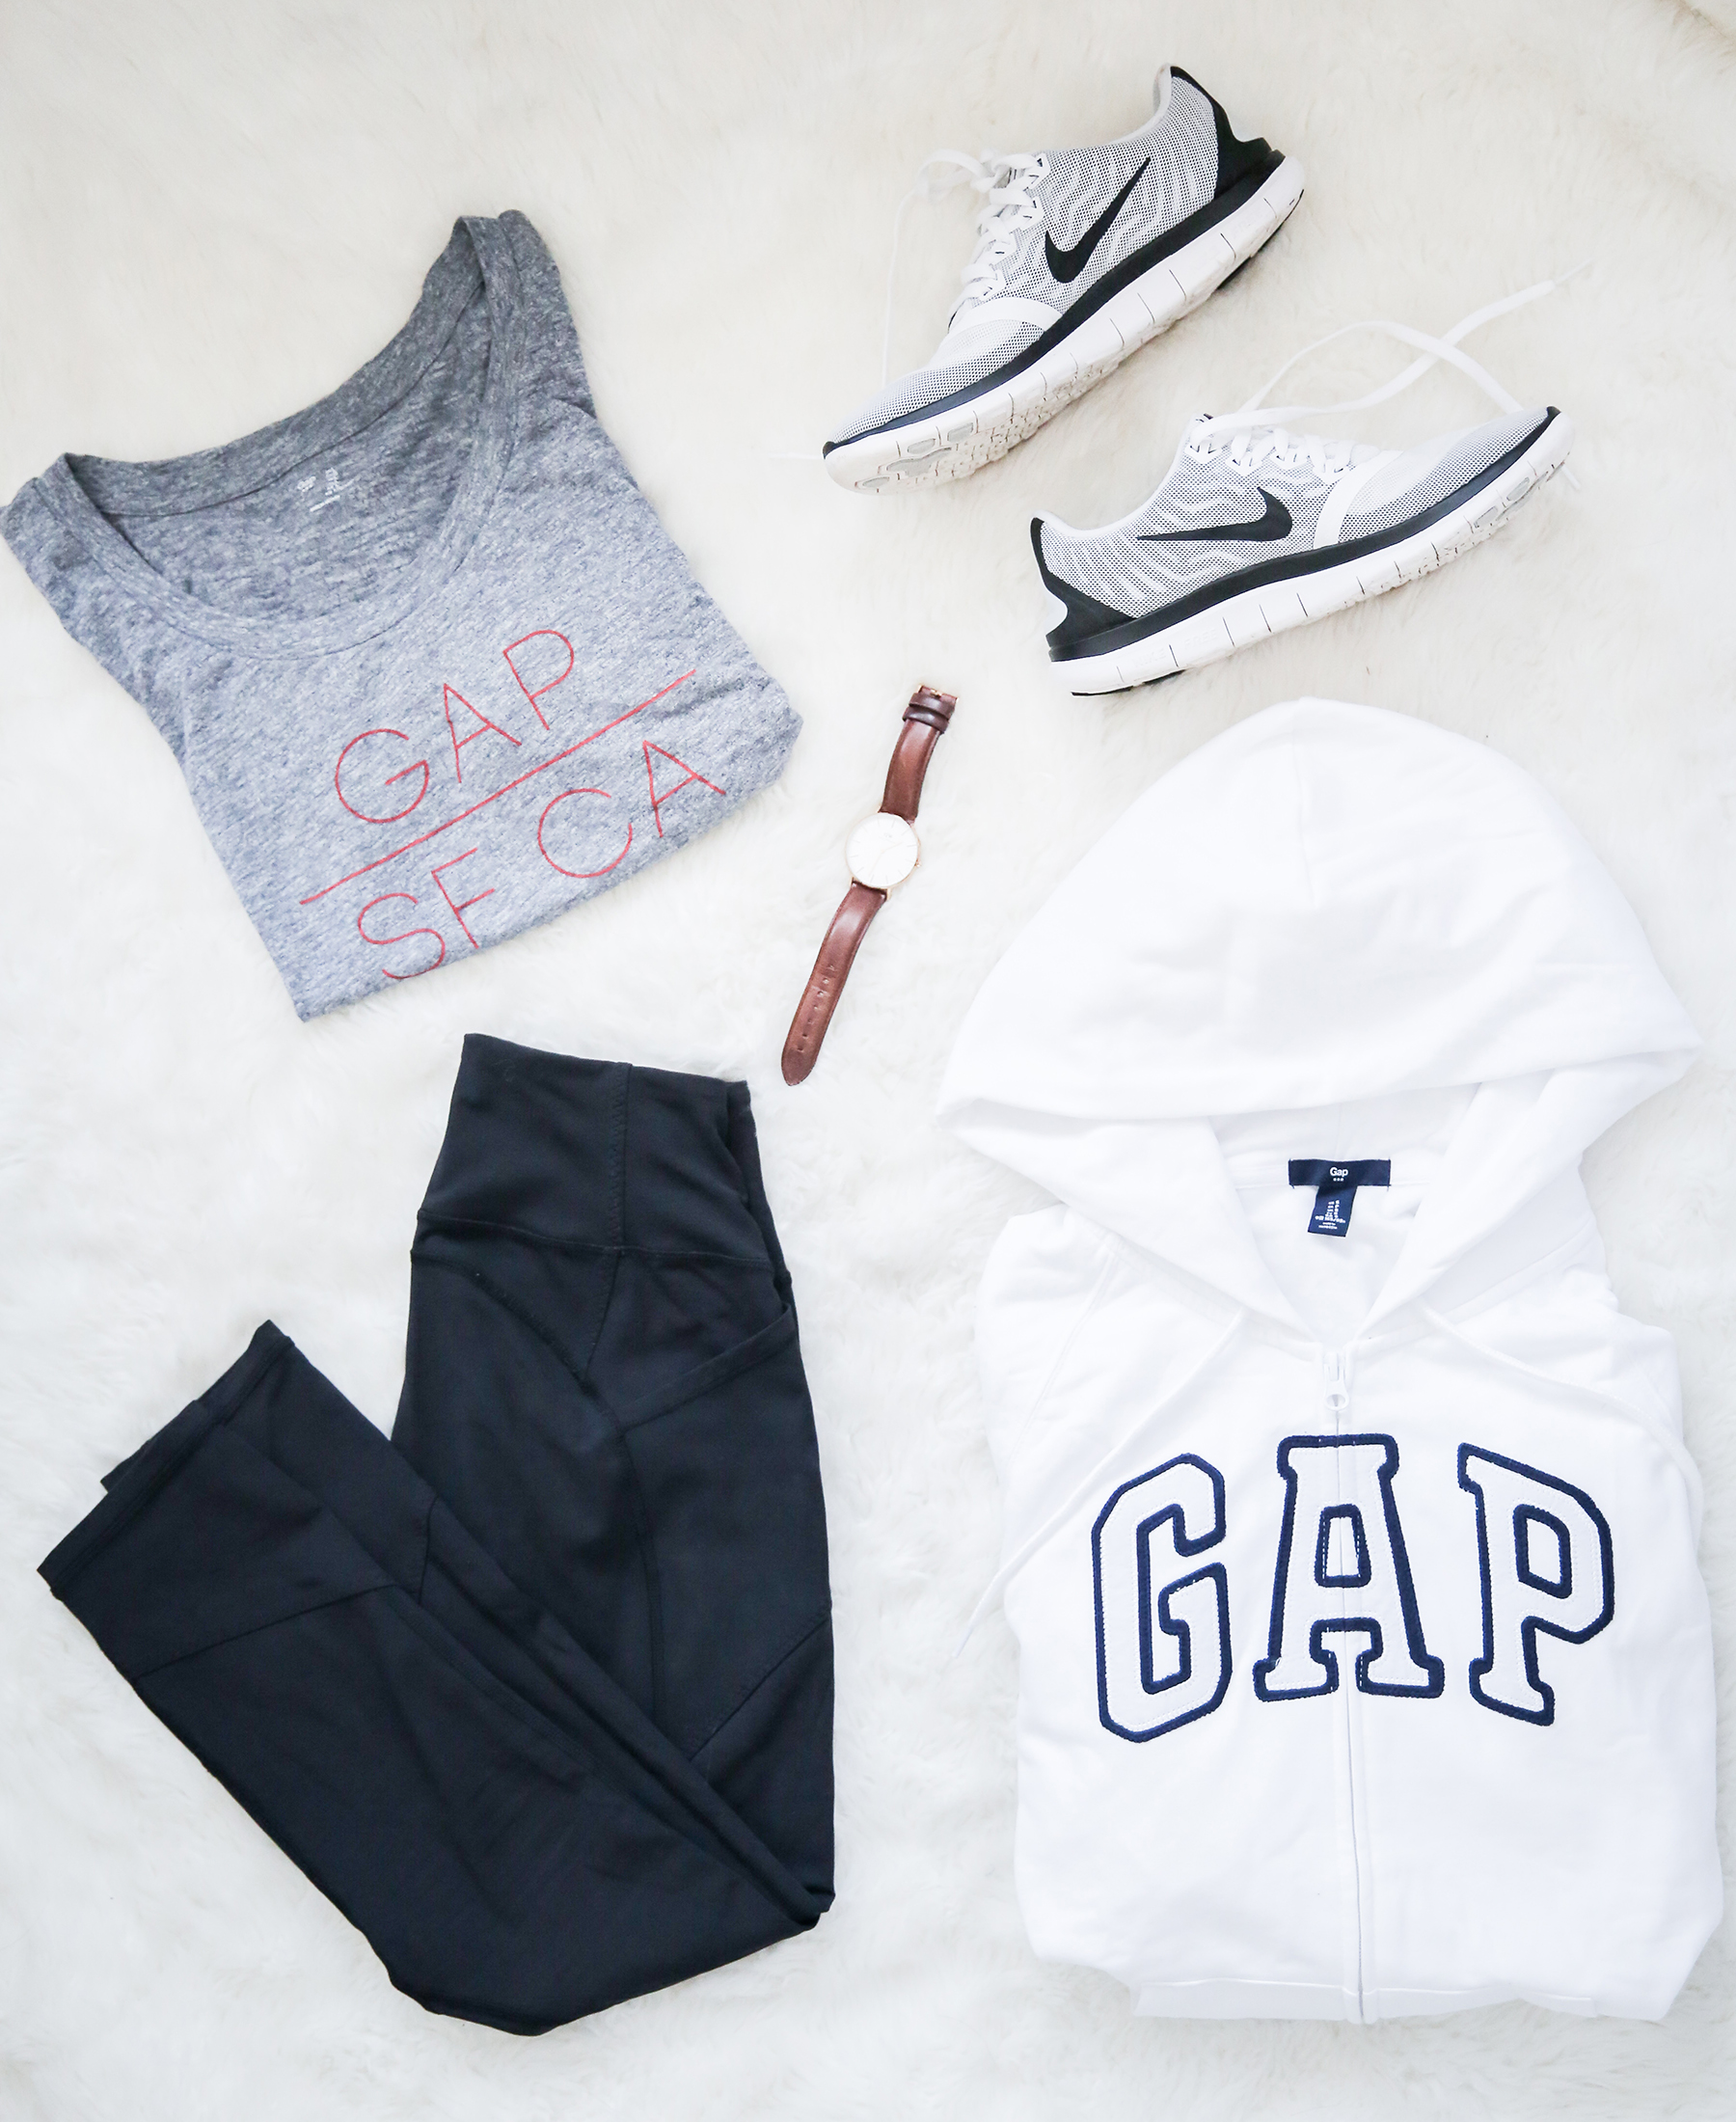 gap logo, gap factory, athleisure, stylish workout wear, stylish leisure wear, stylish lounge wear, cozy casual outfit, gray t-shirt, white zip-up, black leggings outfit, photography by Andrea Posadas of Amanda Holstein for Advicefroma20Something.com